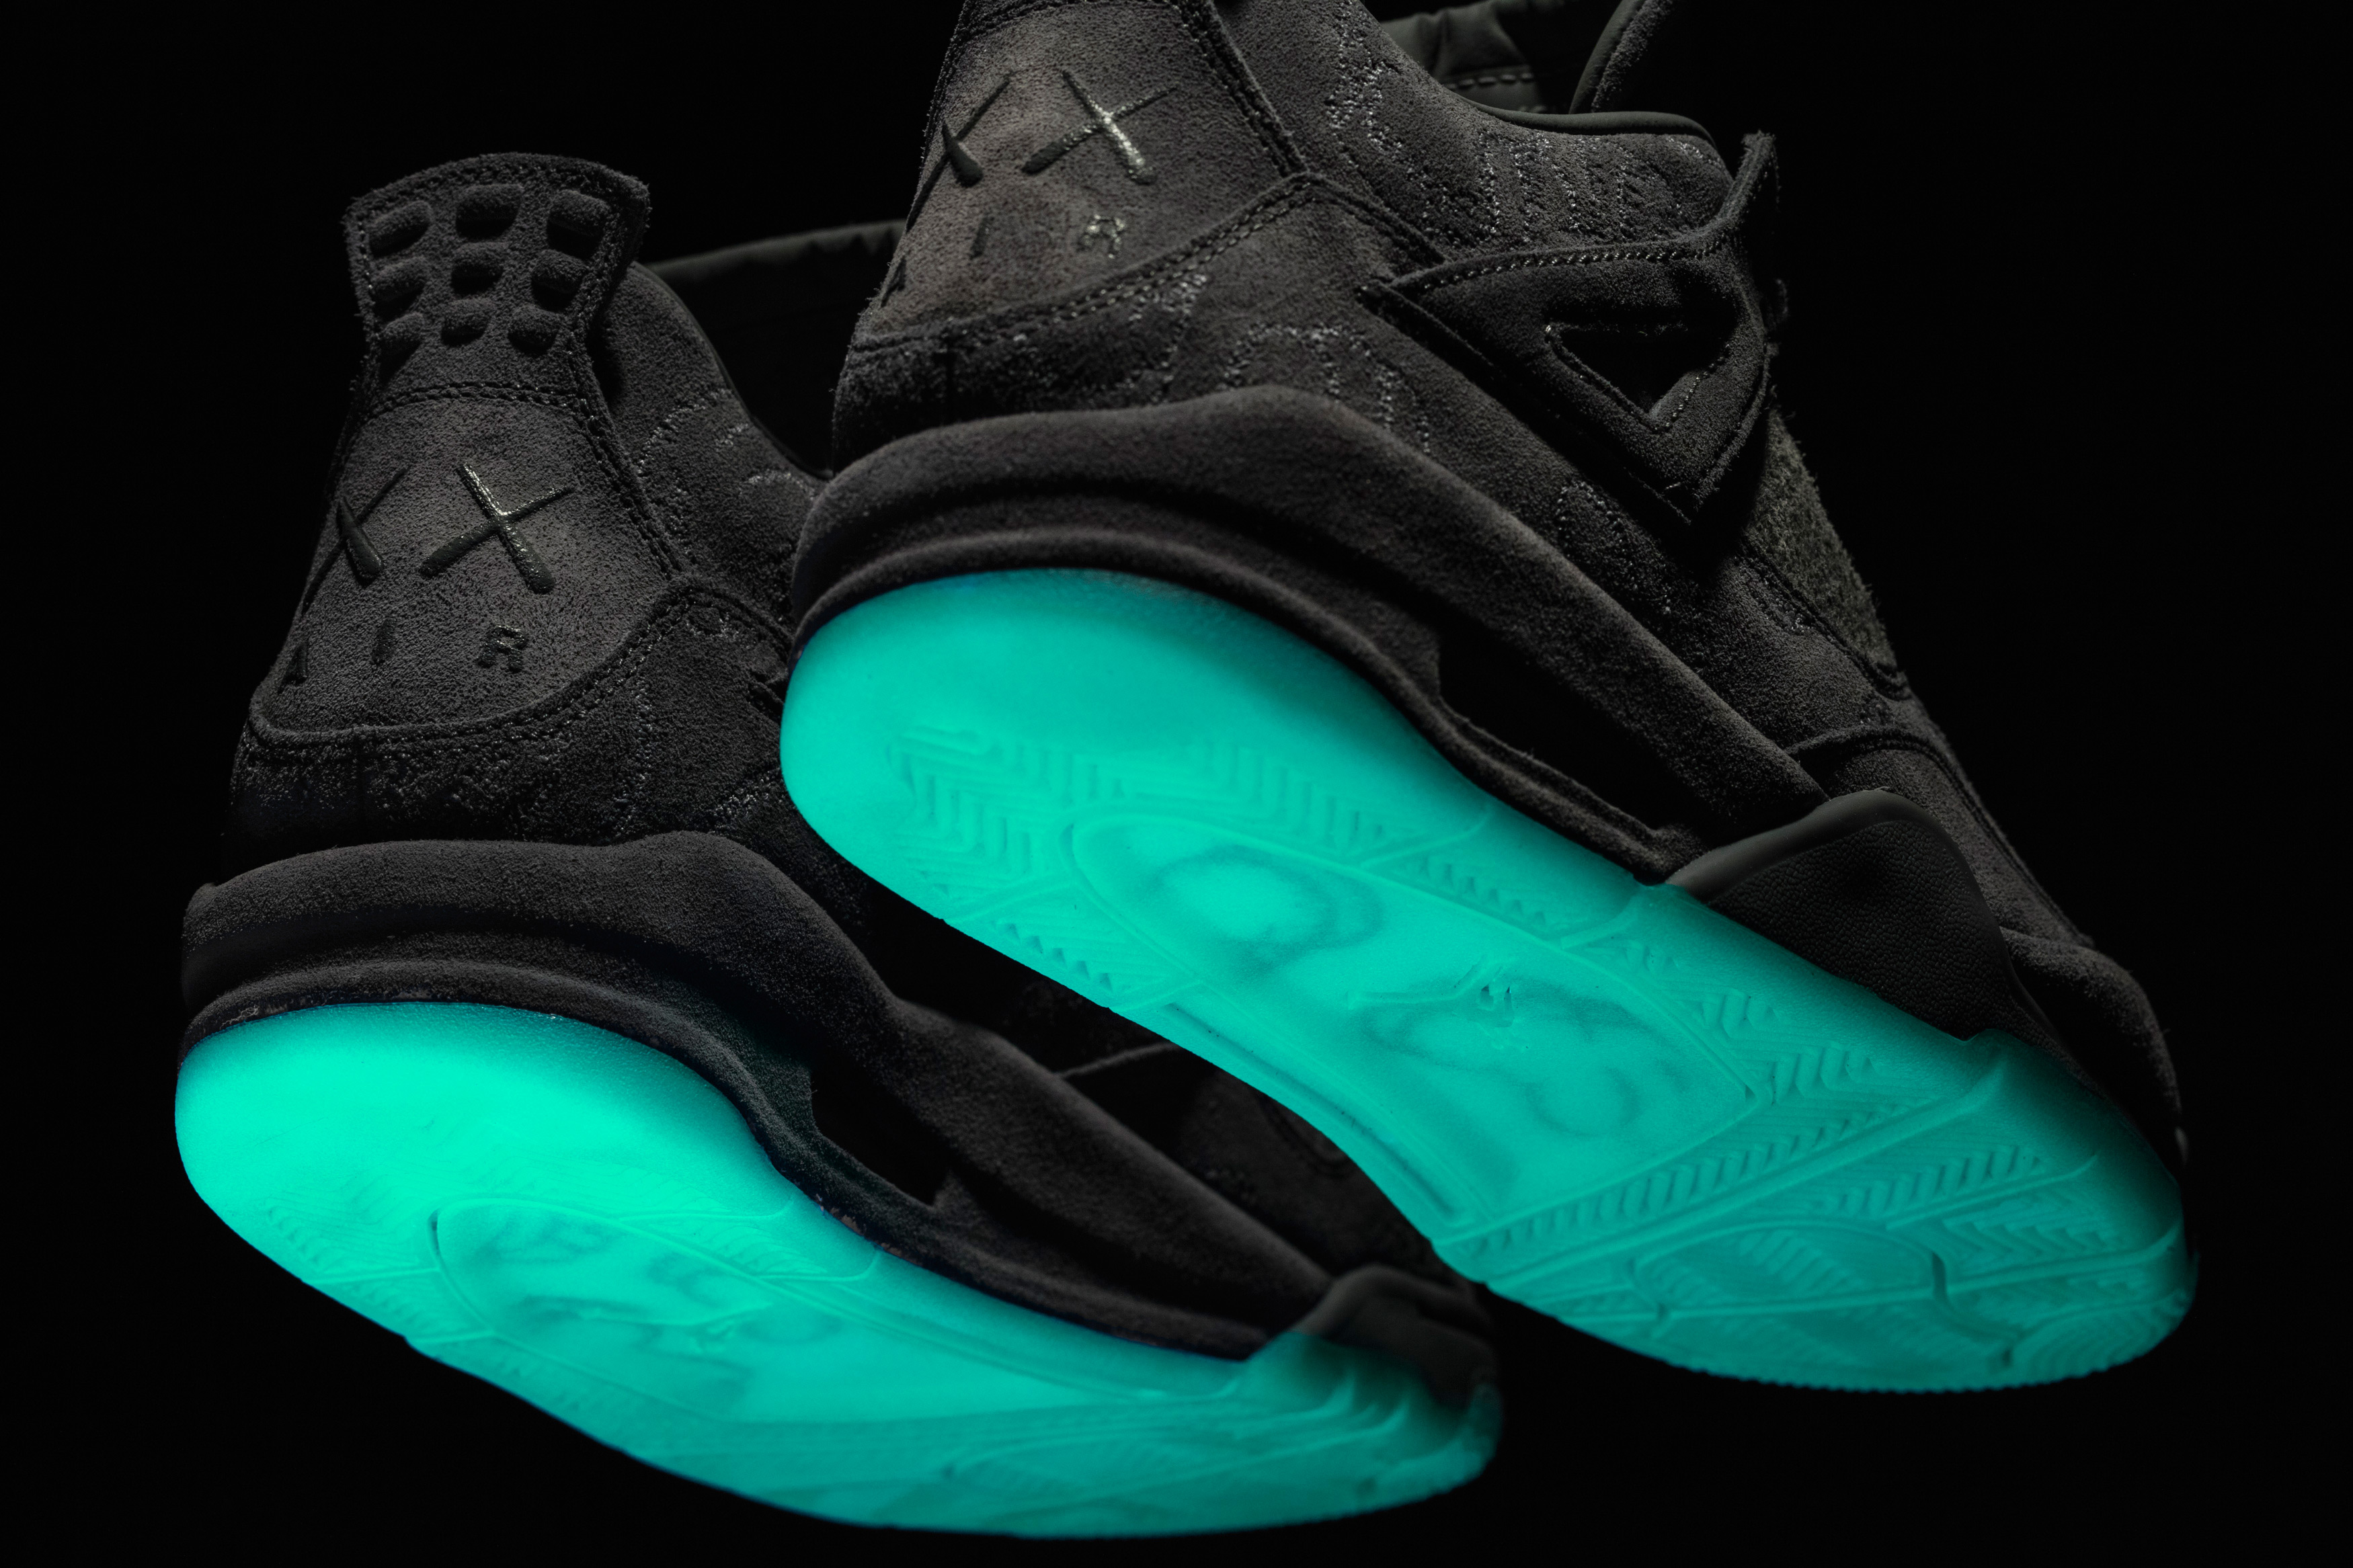 Nike Shoes Glow In The Dark